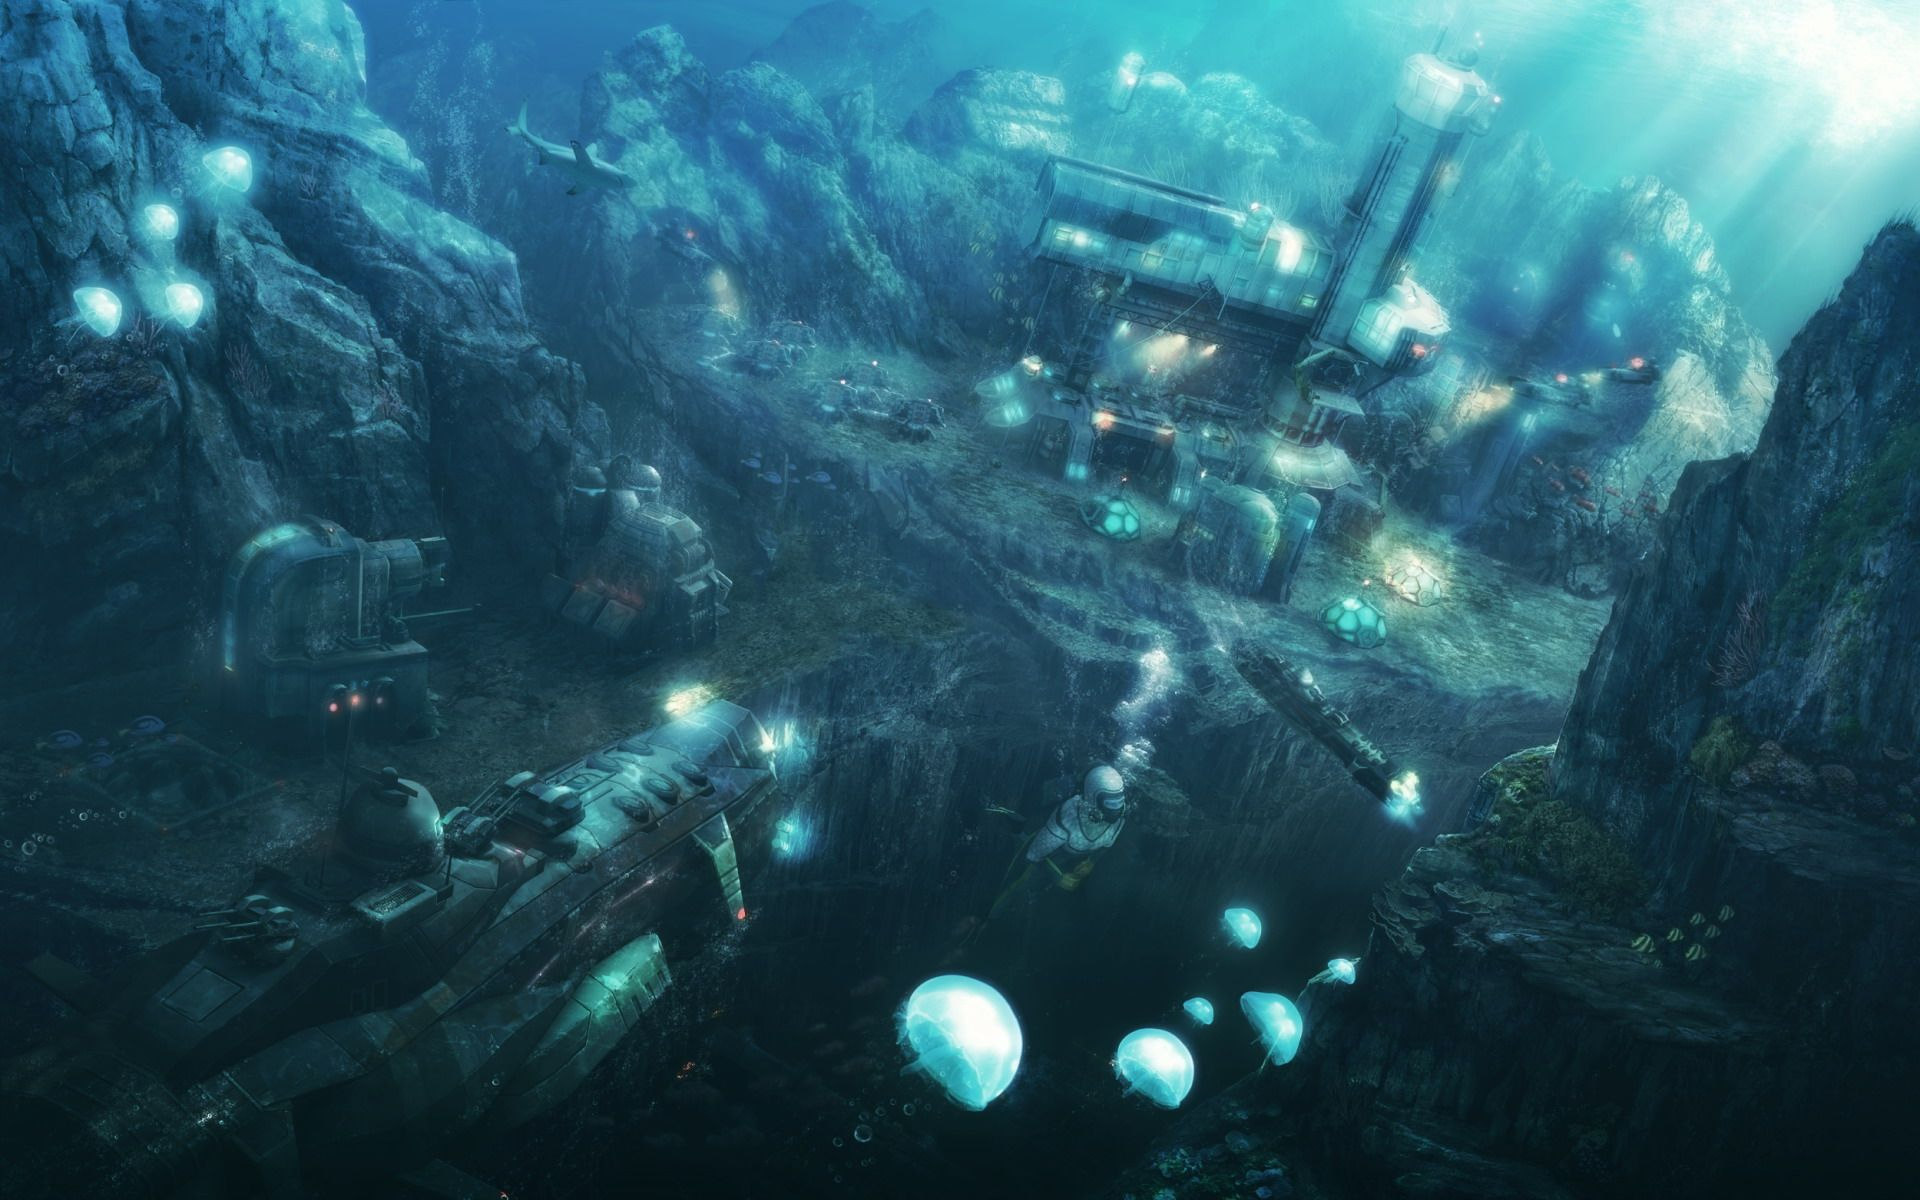 Scifi Submarines Fi Sci Underwater City Underwater City Futuristic Vehicles Ships Environment Concept Art